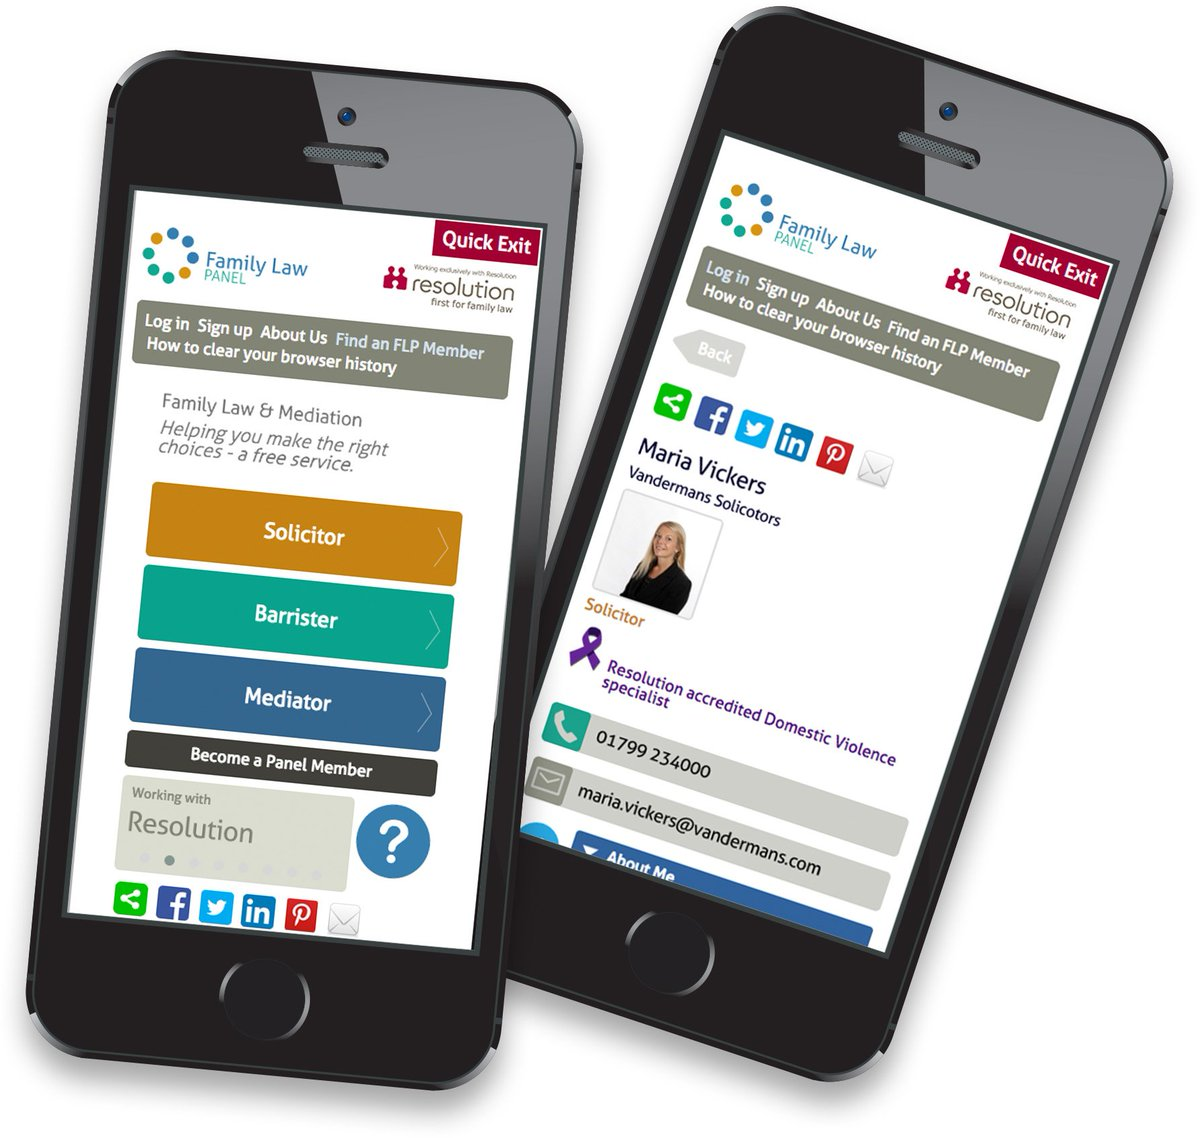 Have you seen our new way of accessing FREE family law information? #divorce #children #domesticviolence https://t.co/gve7F1JCnz